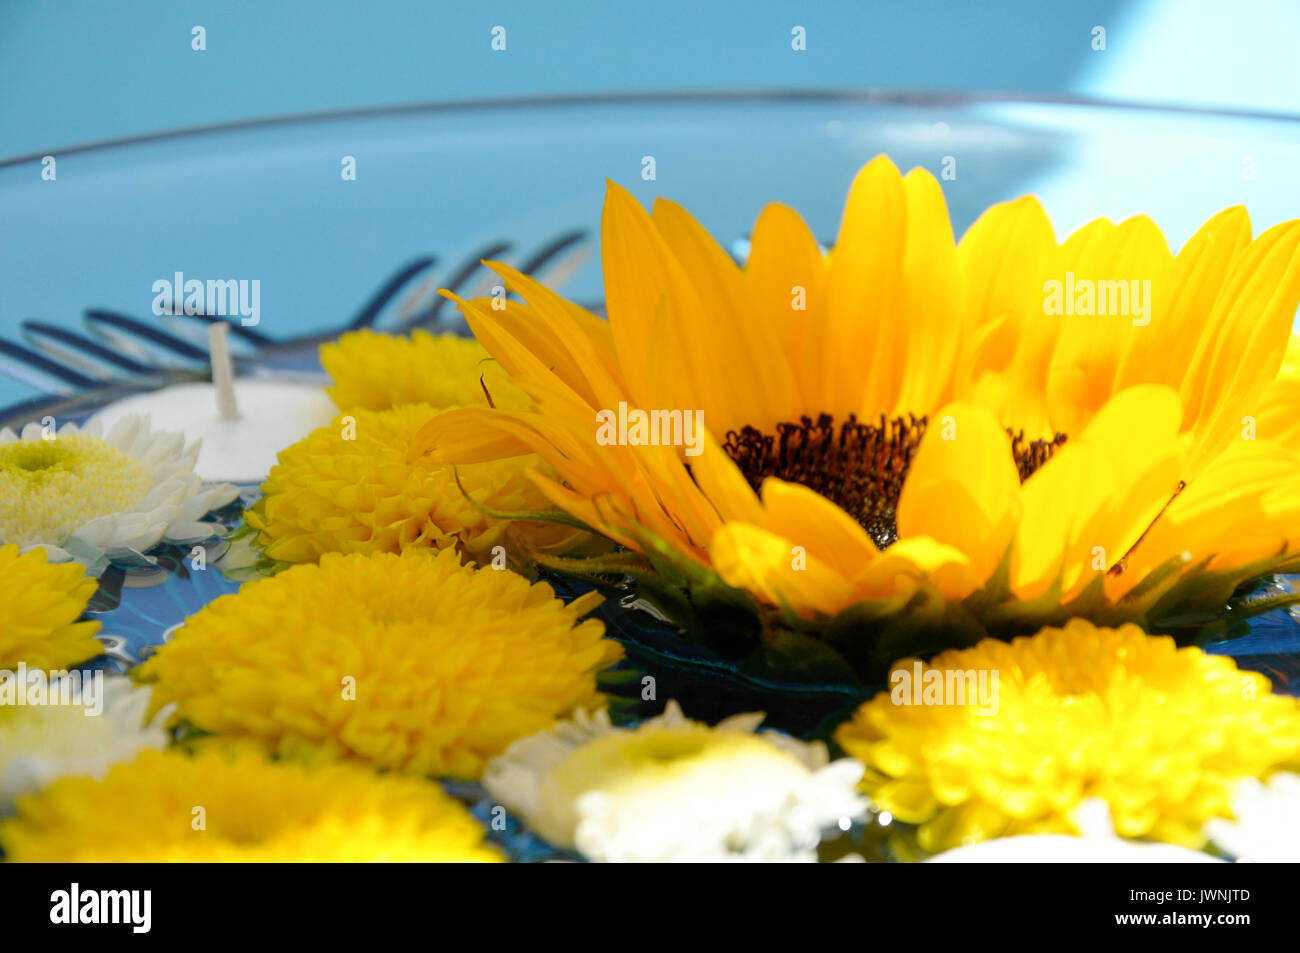 Tranquil Close Up of Sunny Yellow Sunflower Floating in Small Bowl of Water with Unlit Tealight Candle and Yellow and White Blossoms - Stock Image